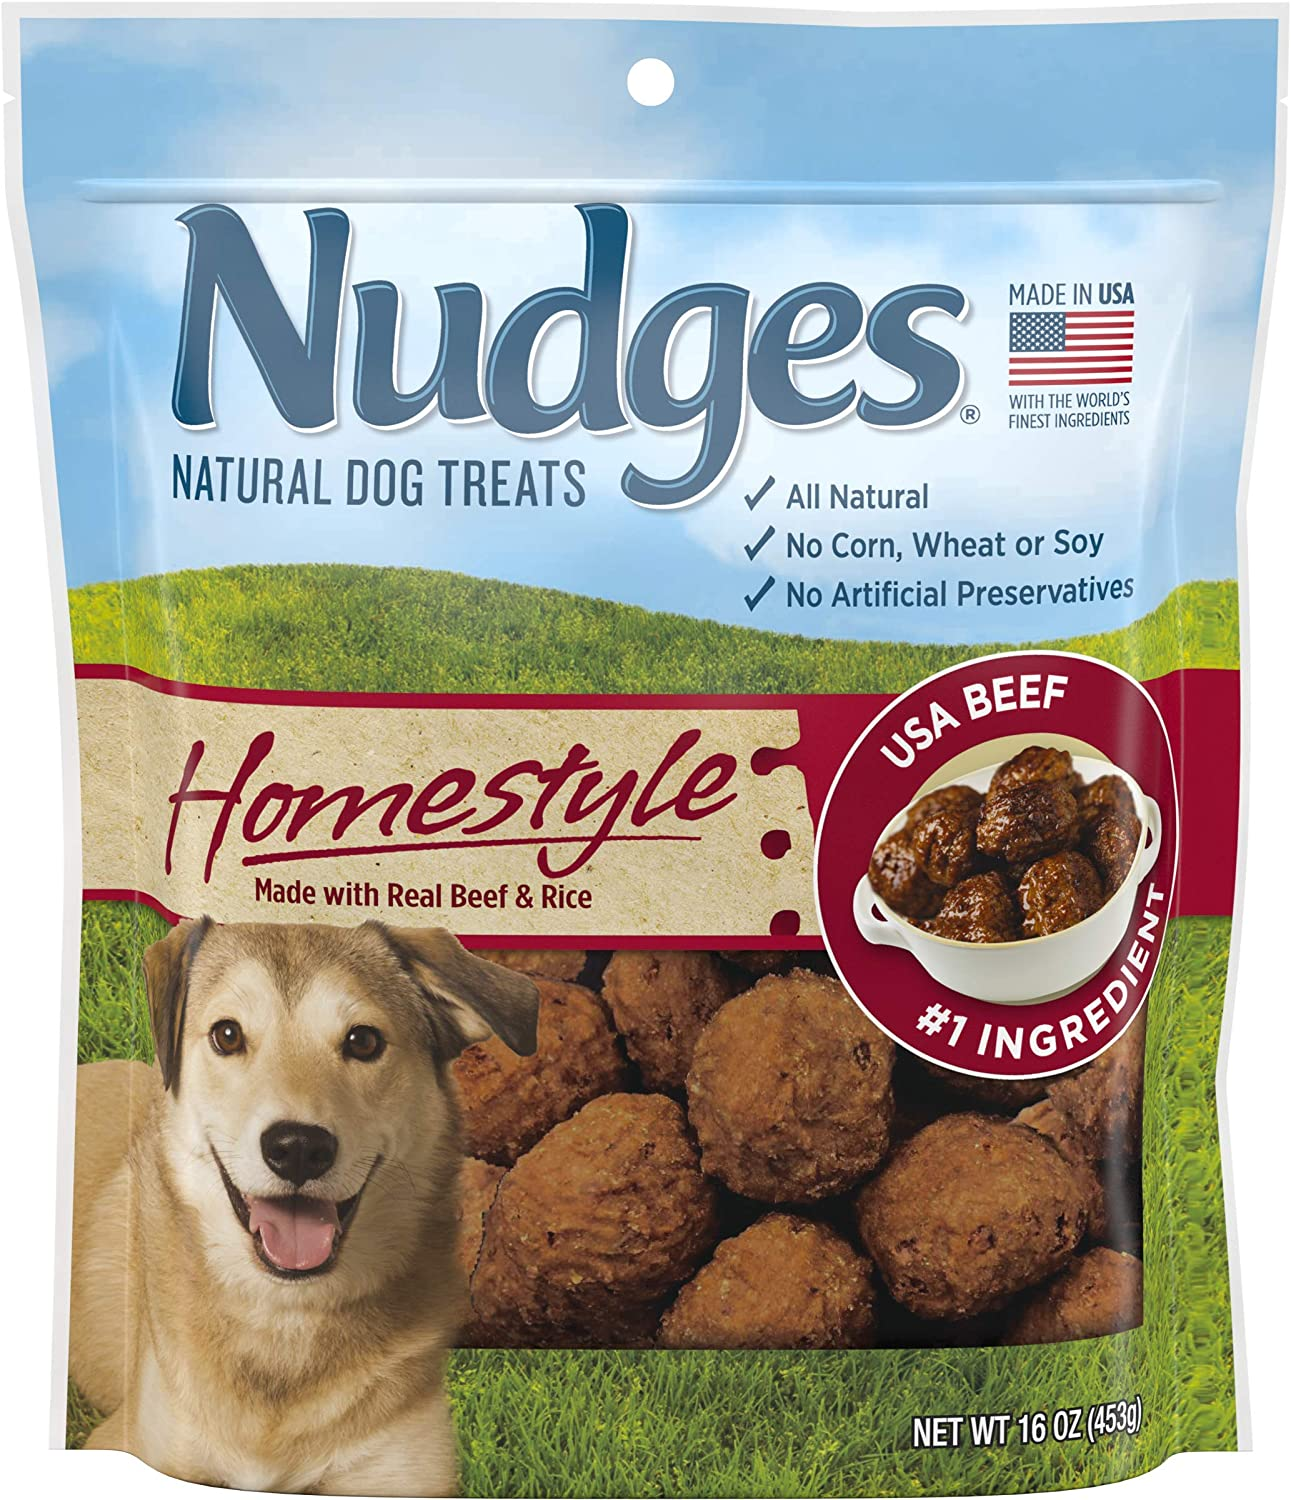 Nudges Homestyle Meatball Made with Real Beef & Rice, 16 Ounce